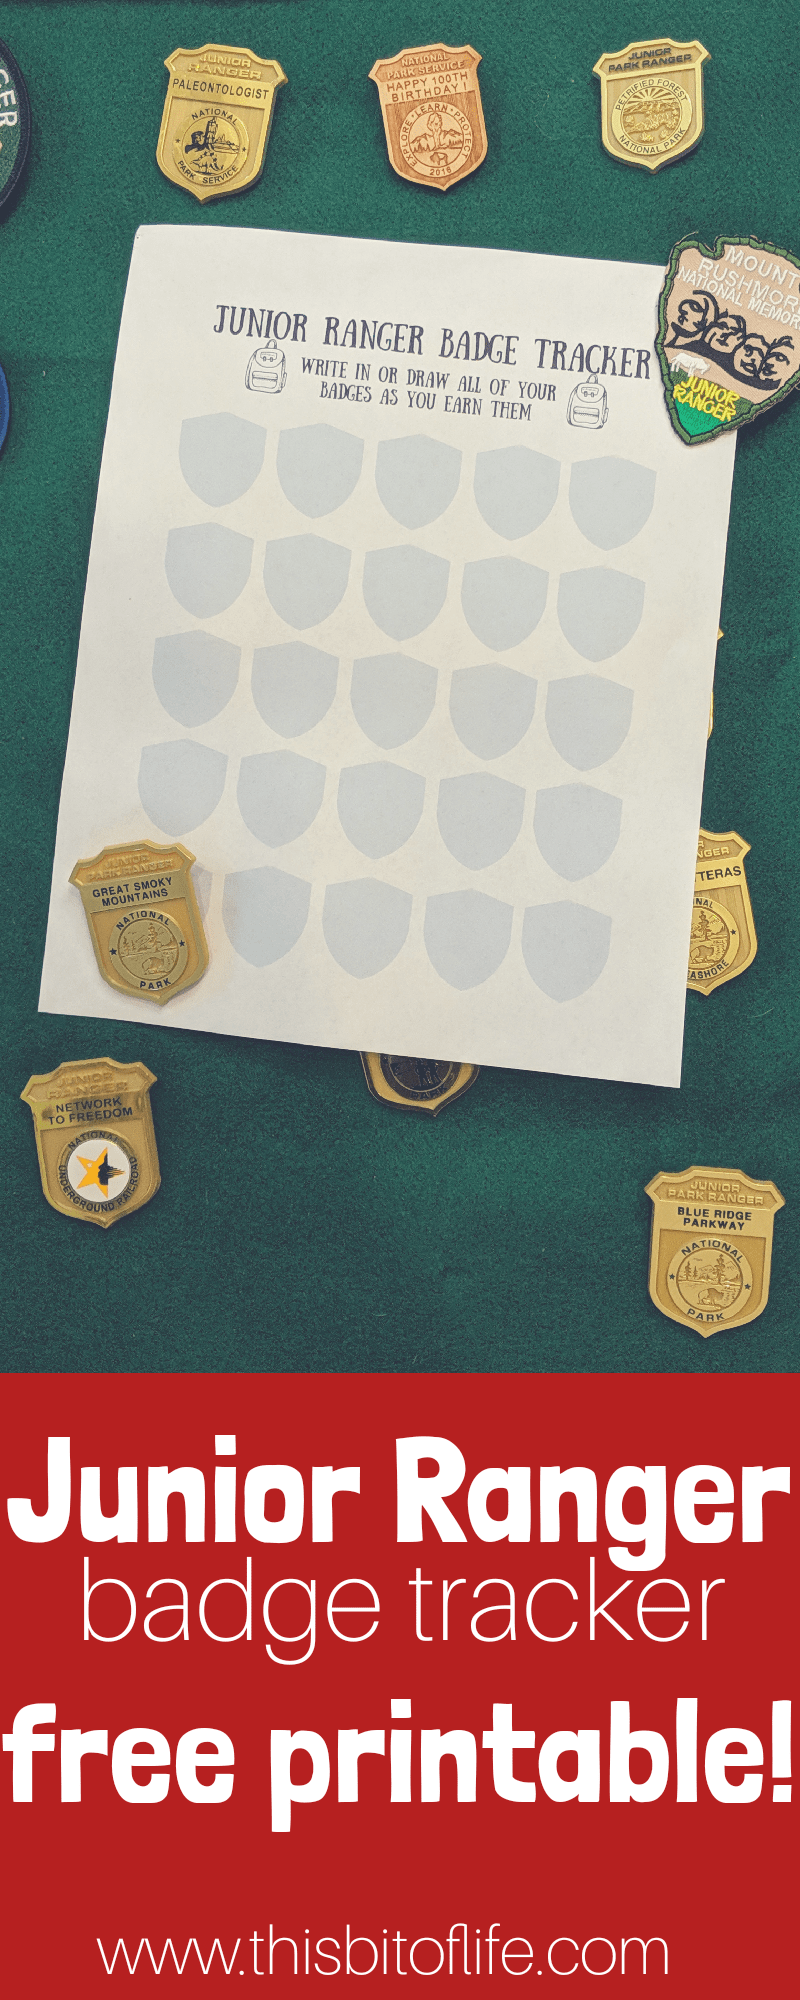 Free Junior Ranger Badge Tracker Printable. Don't want to risk losing all your badges at the parks? Leave them at home and keep track of your Junior Ranger Badges with this free printable! #freeprintable #juniorranger #roadschooling #nationalparks #kidsinparks